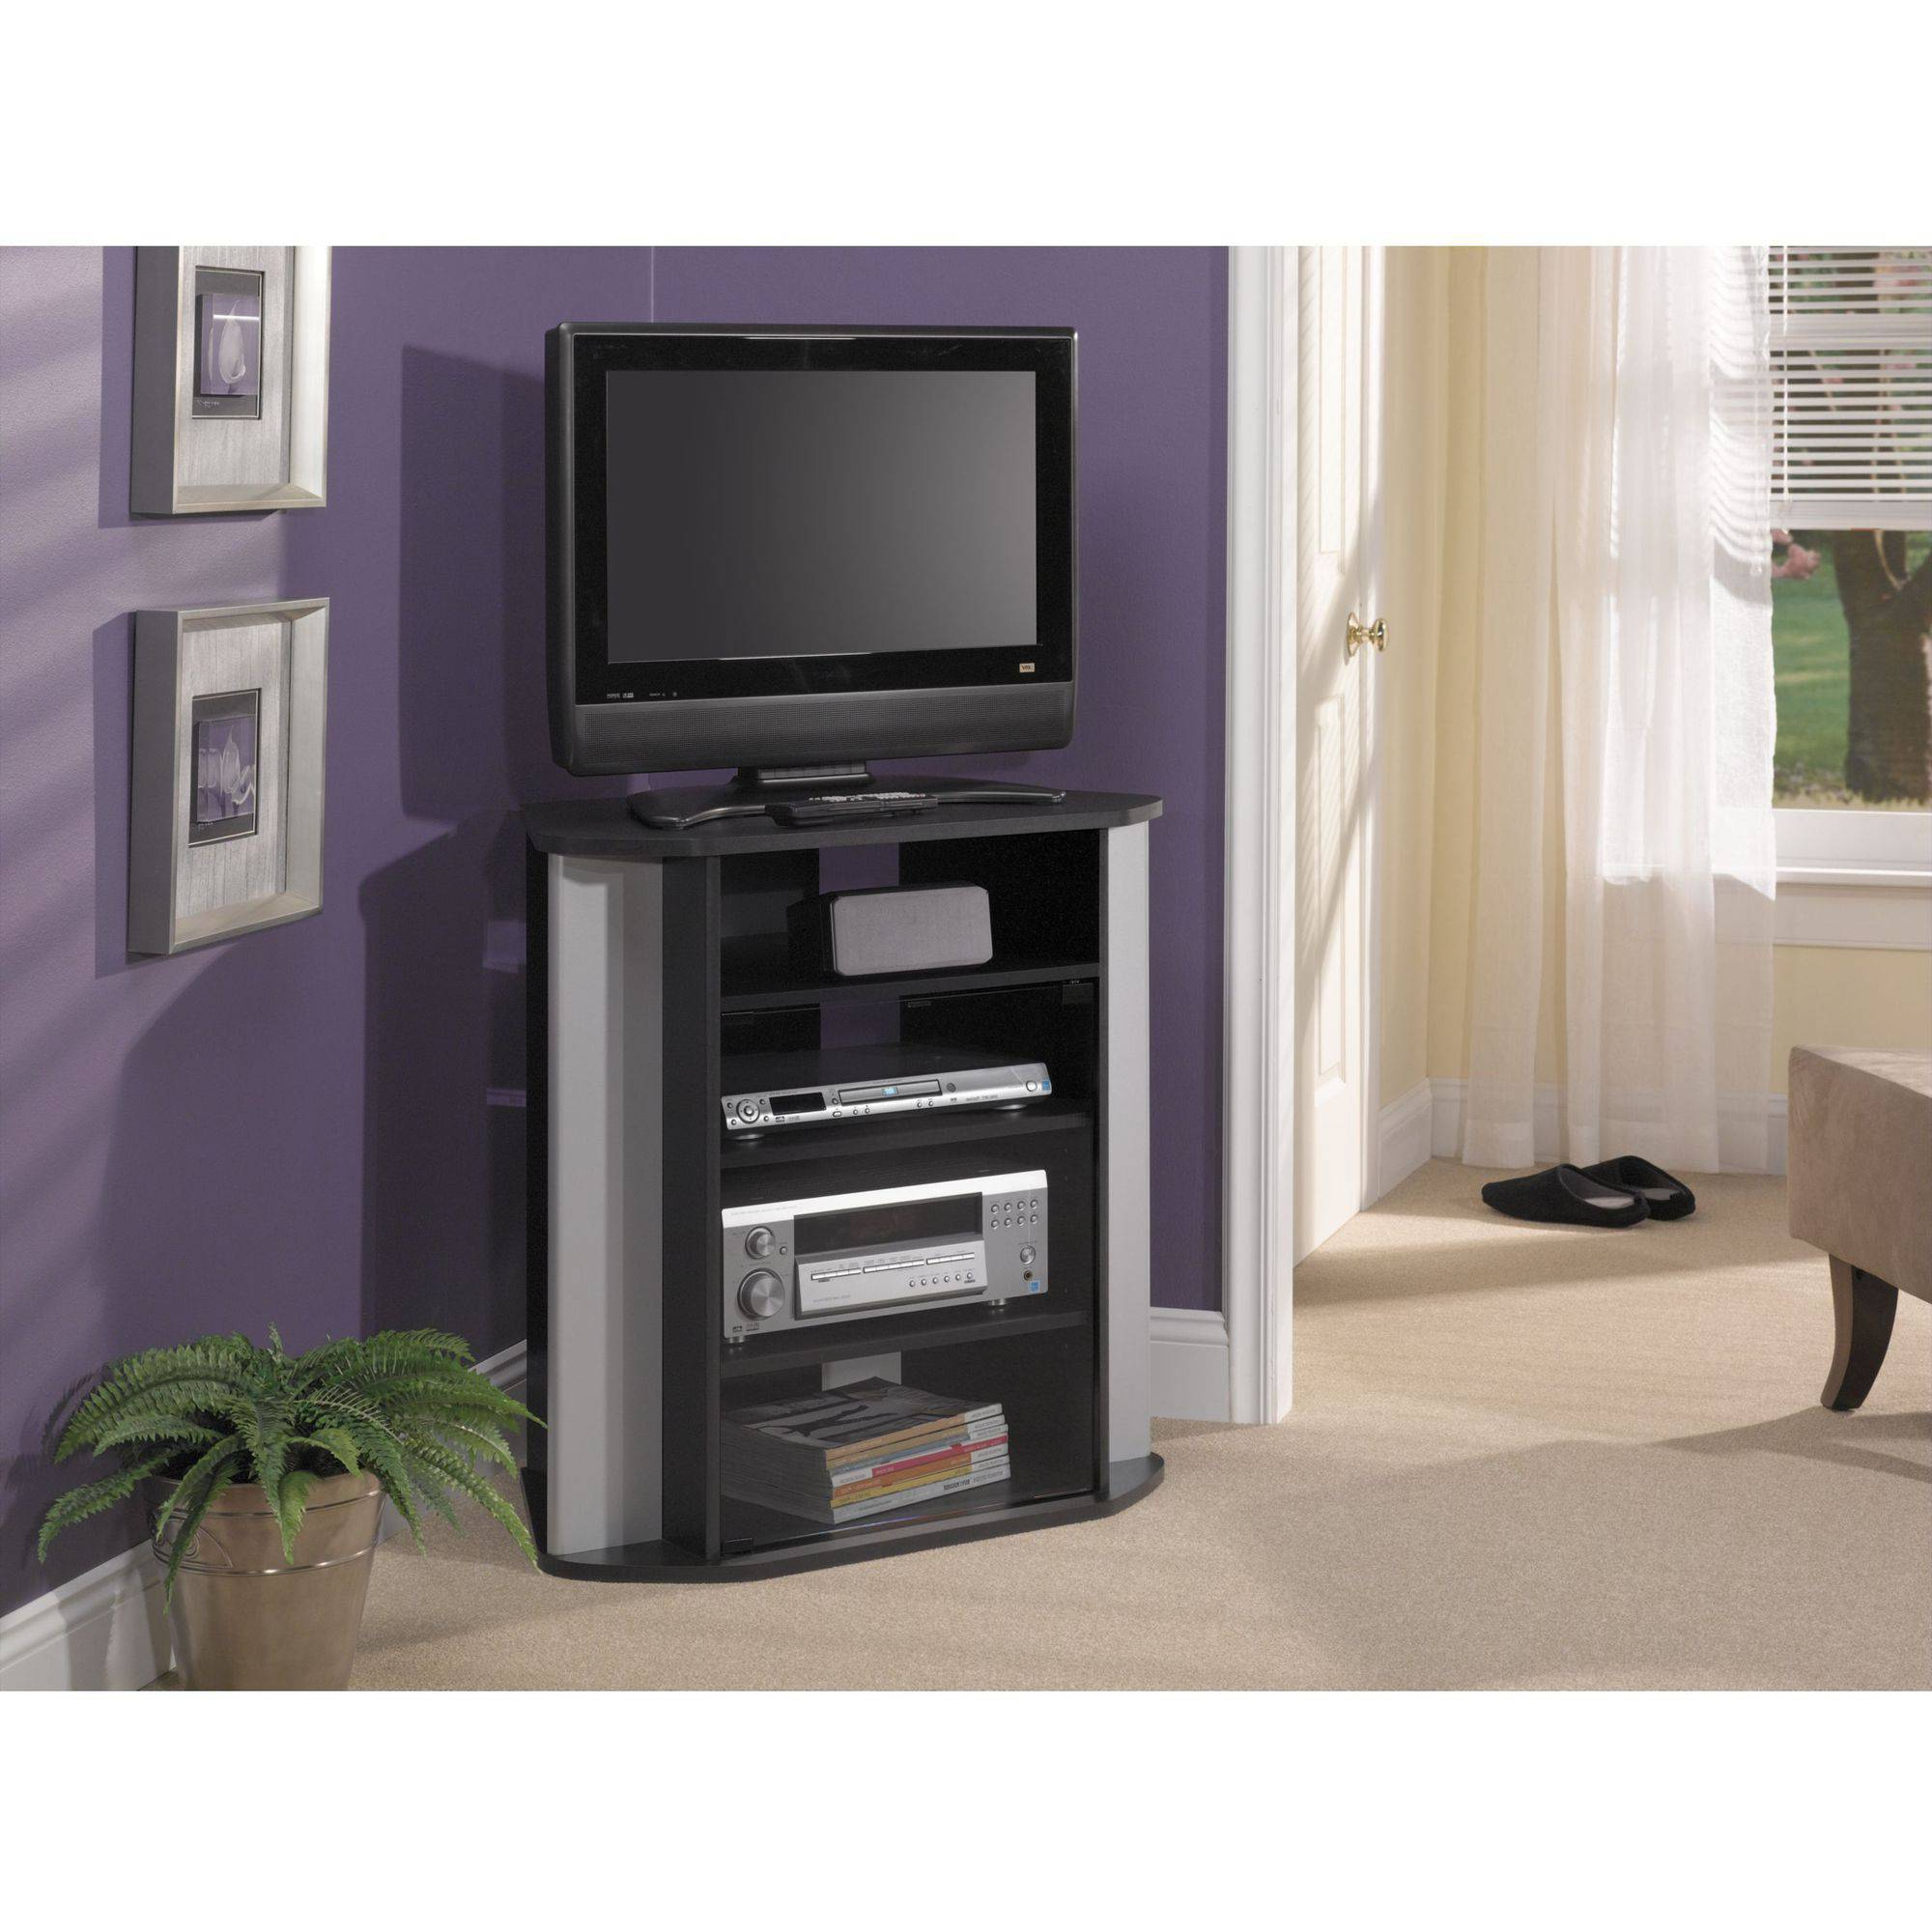 Trendy Tv Stands For Corner With Regard To Bush Furniture Visions Tall Corner Tv Stand In Black And Metallic (View 9 of 20)